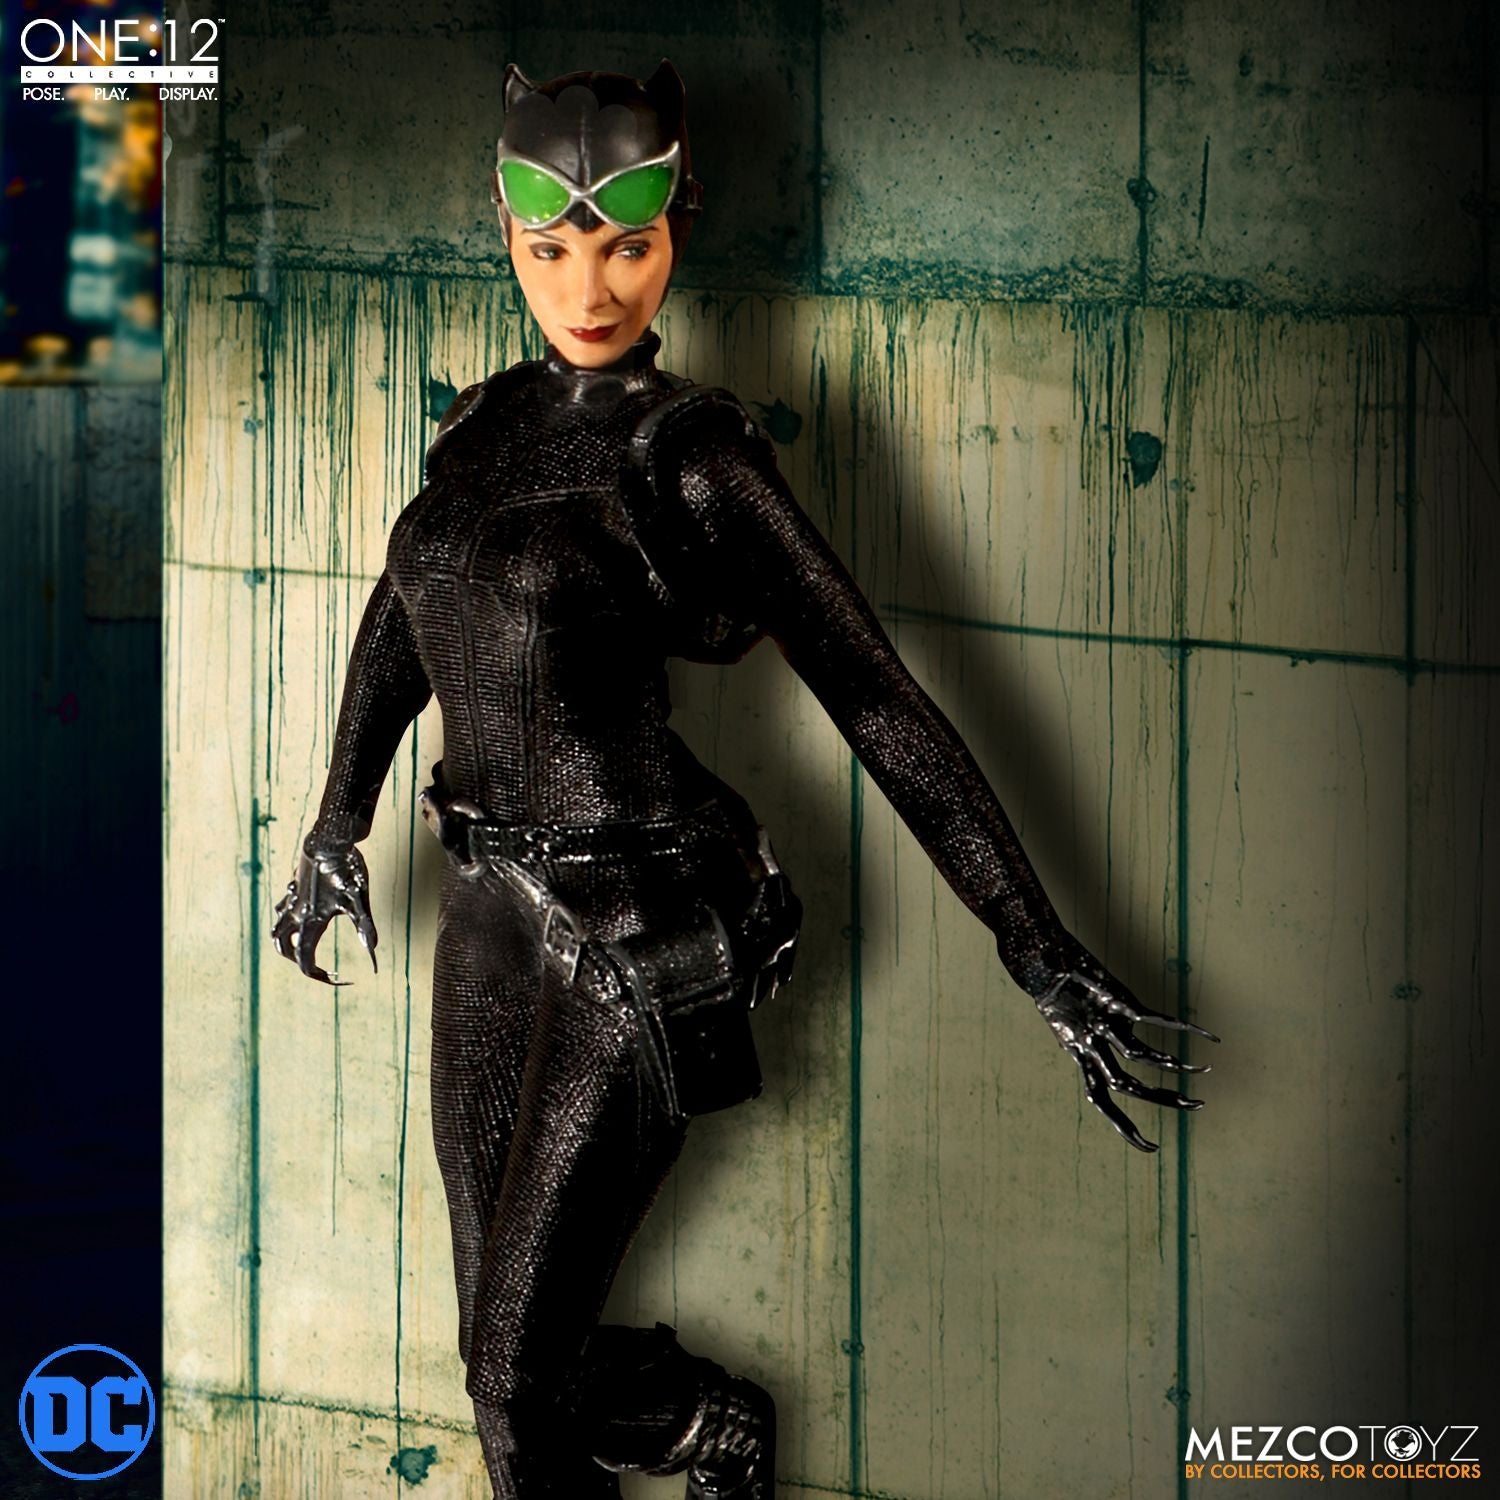 Mezco CATWOMAN One:12 Collective DC Universe Action Figure - Collectors Row Inc.